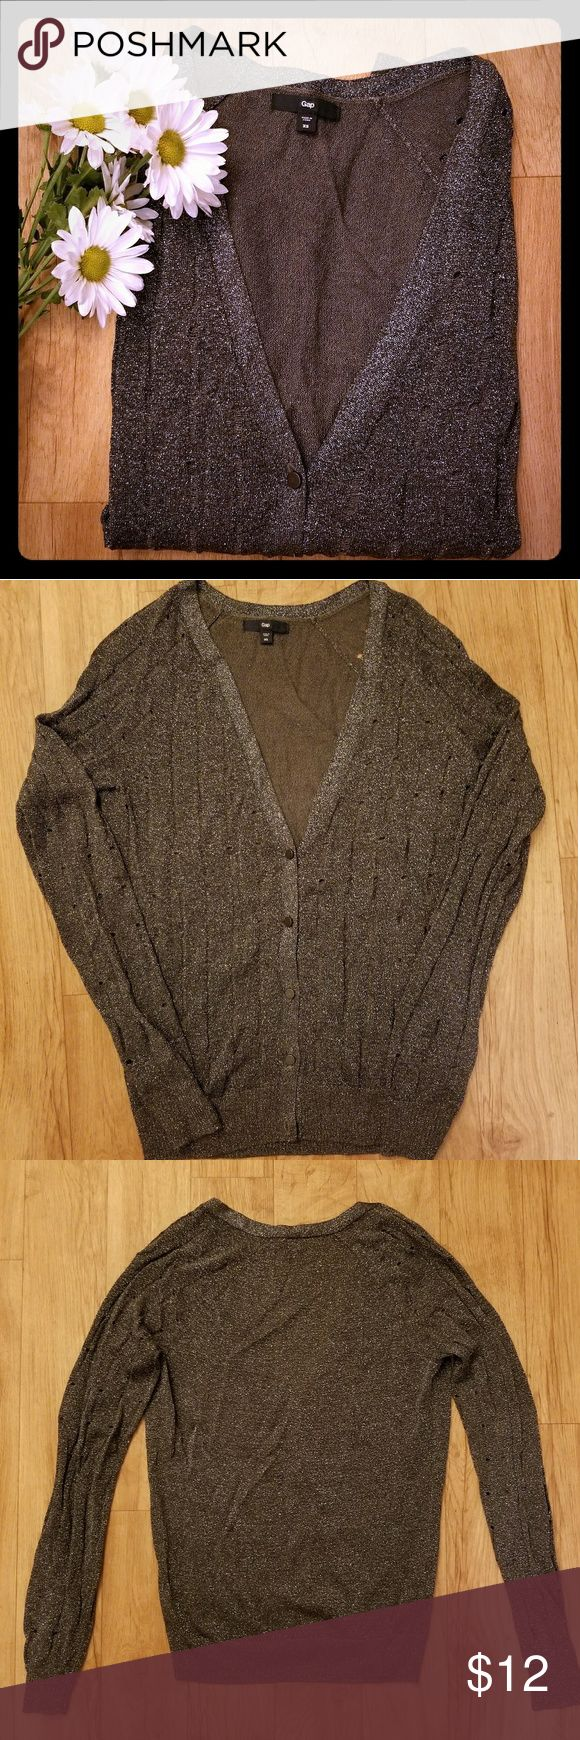 Gap Sheer and shimmering grey and silver cardigan Sheer cardigan with shimmering sparkles. Has holes in it but this is the style of it. Color is a Dark grey with silver. No longer fits me. Size is an XS. Very thin and more like a knit top and not so much a sweater. Still in great condition and was not worn that many times. GAP Sweaters Cardigans